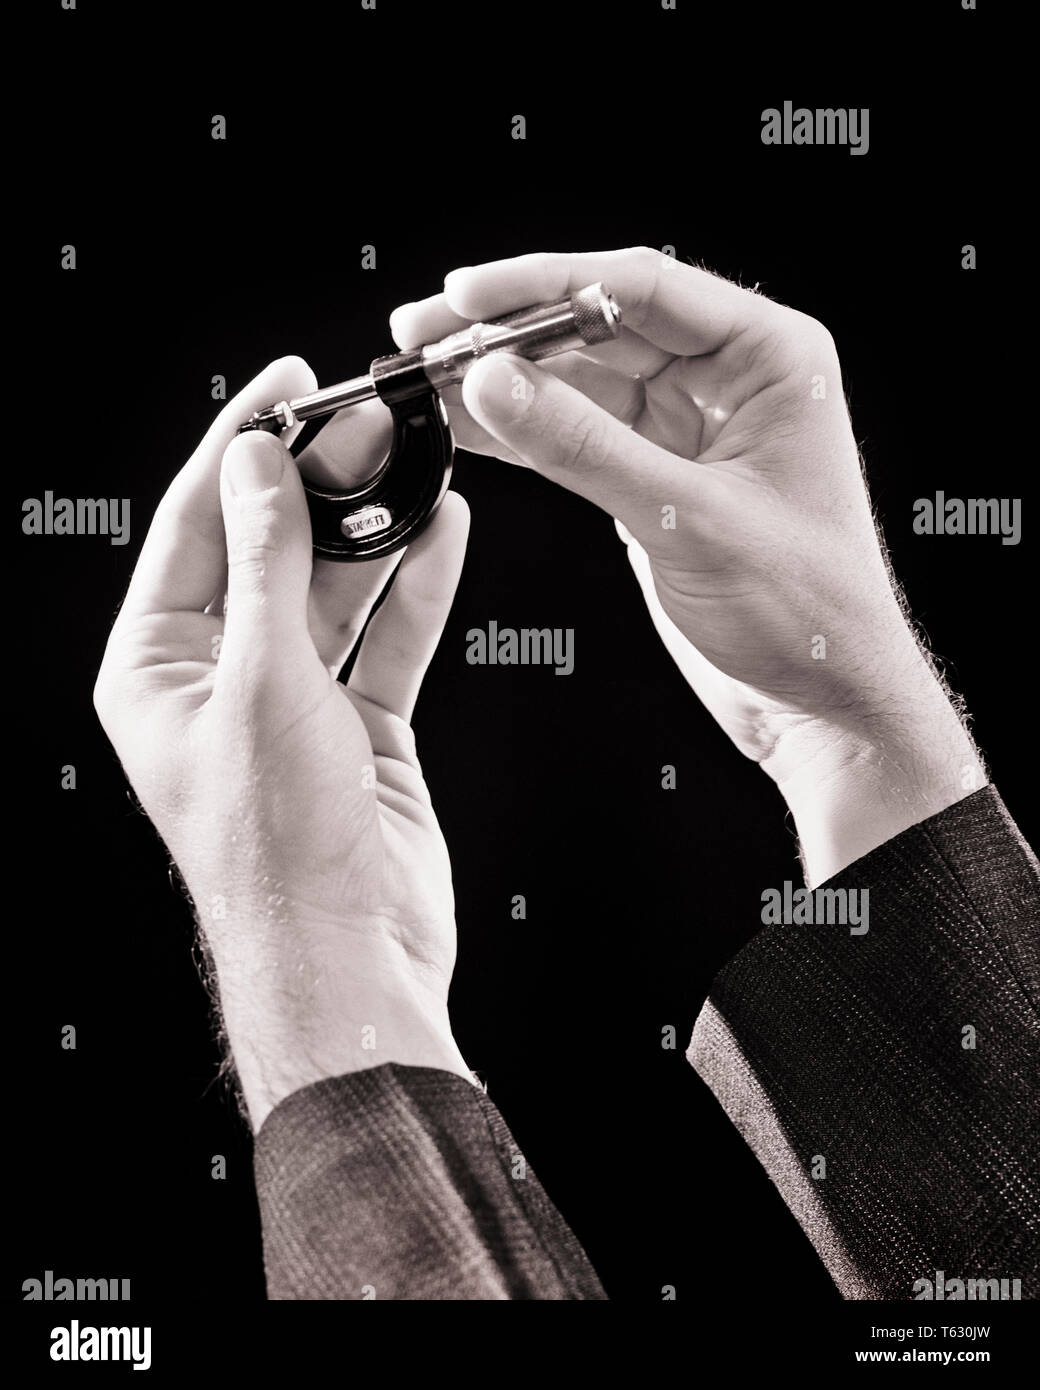 1930s MALE HANDS HOLDING A MICROMETER SCREW GAUGE USED FOR ACCURATE MEASUREMENT OF THICKNESS OF VARIOUS COMPONENT MATERIALS - s4269 HAR001 HARS MID-ADULT MAN PRECISION SCREW SPINDLE YOUNG ADULT MAN ACCURATE BLACK AND WHITE CAUCASIAN ETHNICITY HAR001 OLD FASHIONED - Stock Image